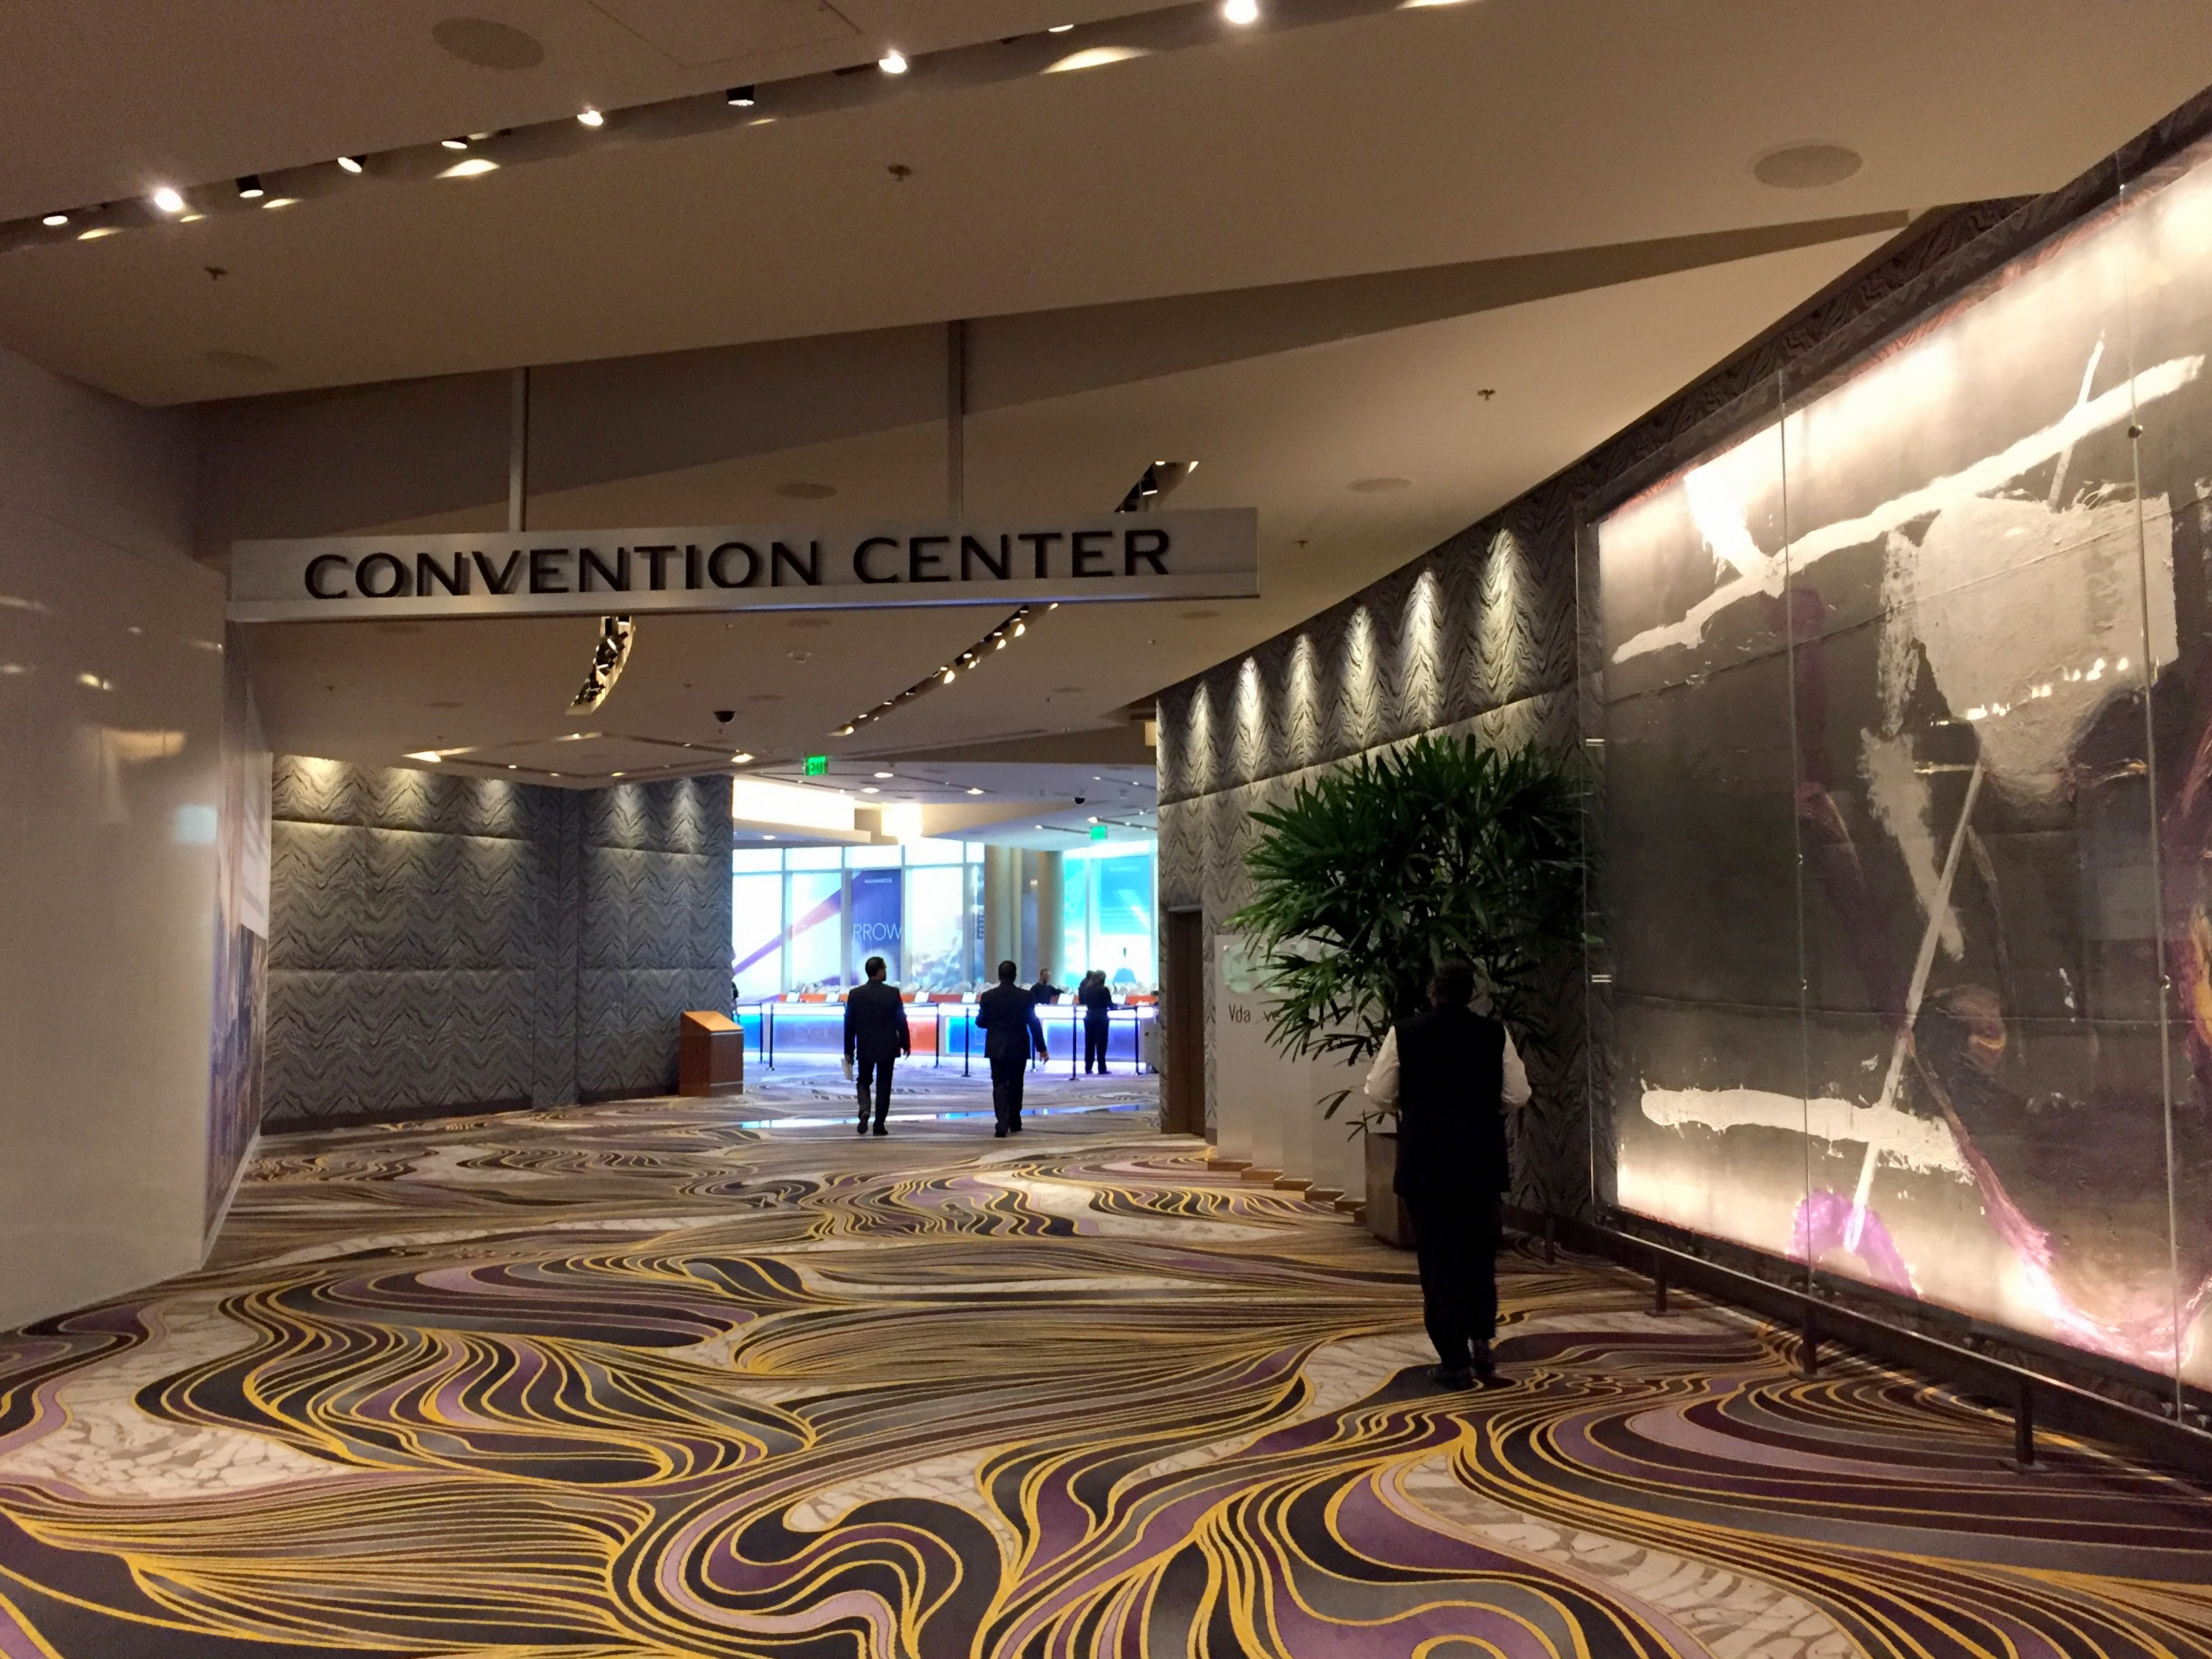 Eco friendly Aria Convention Center uses recycled paper and upcycled staff uniforms.